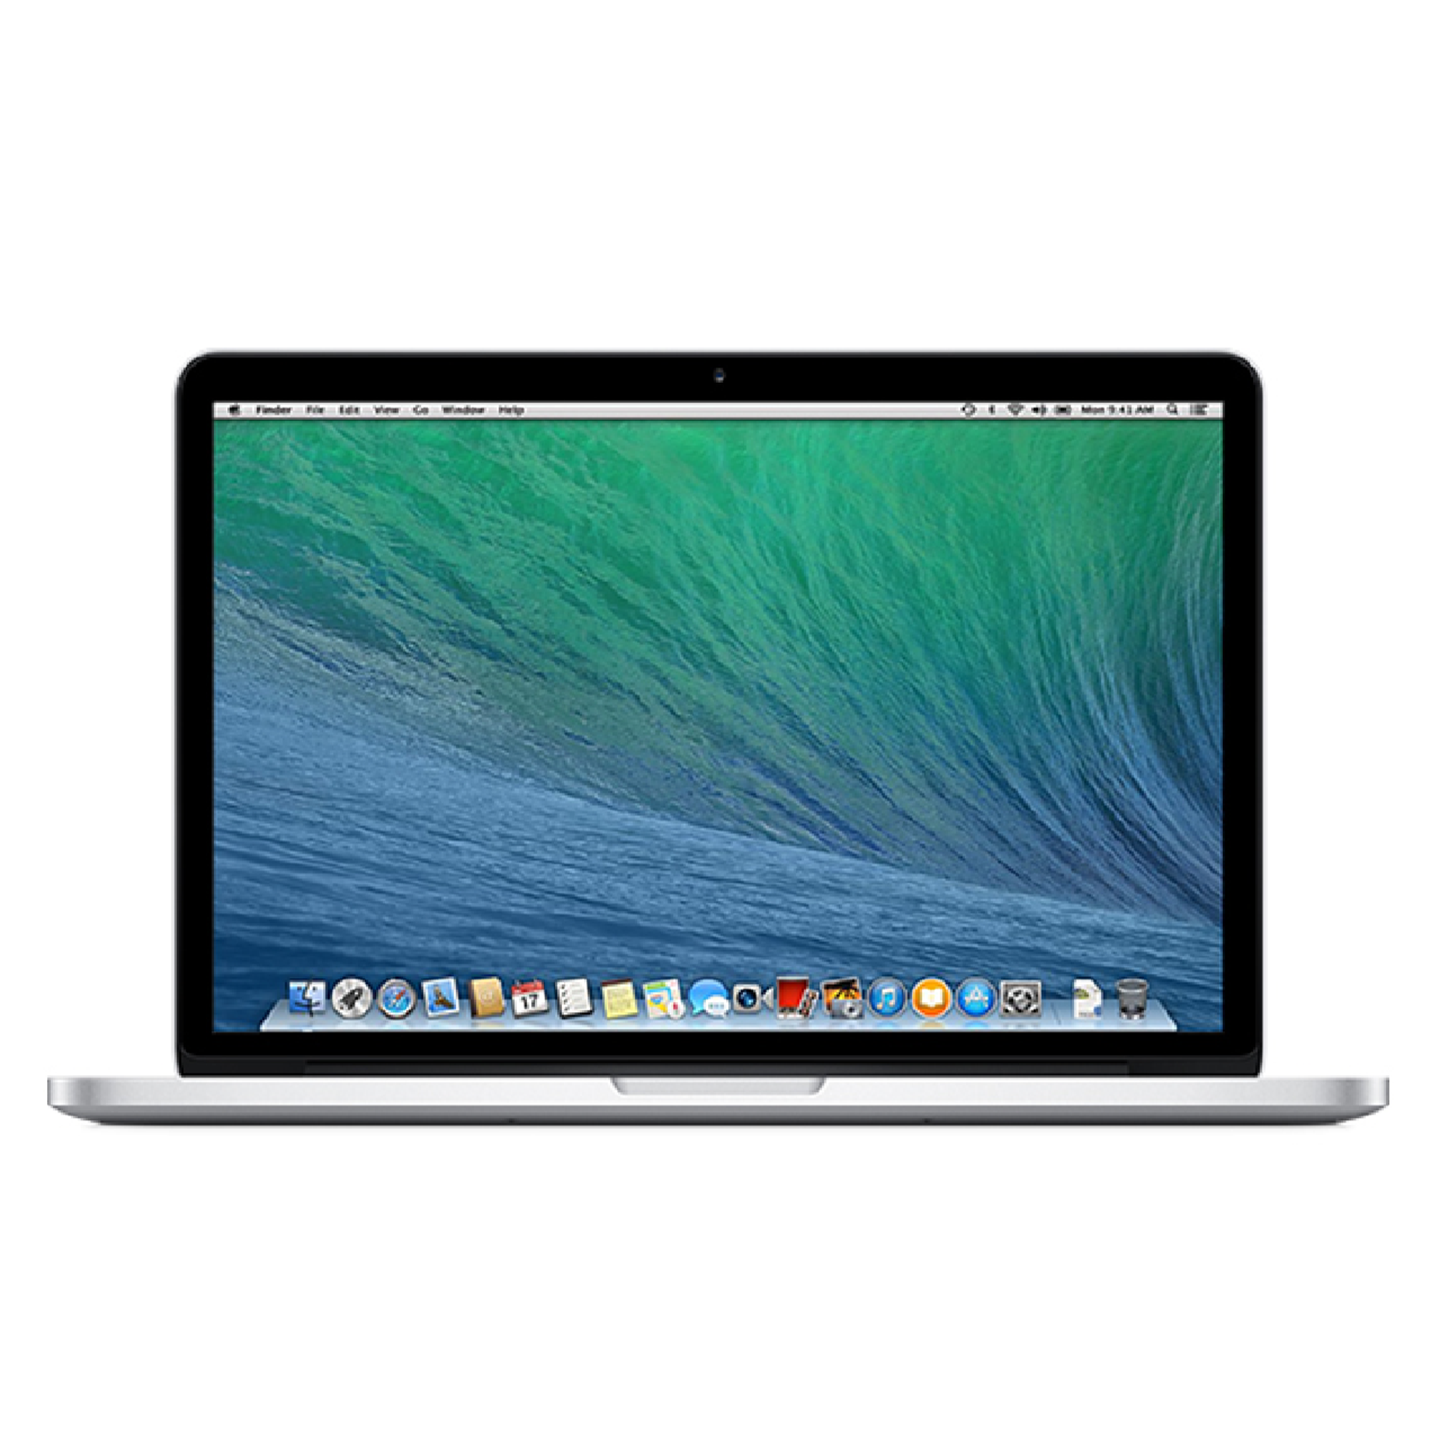 MacBook Pro (Retina, 13-inch, Late 2013)Core i5/8GB/SSD128GB E796